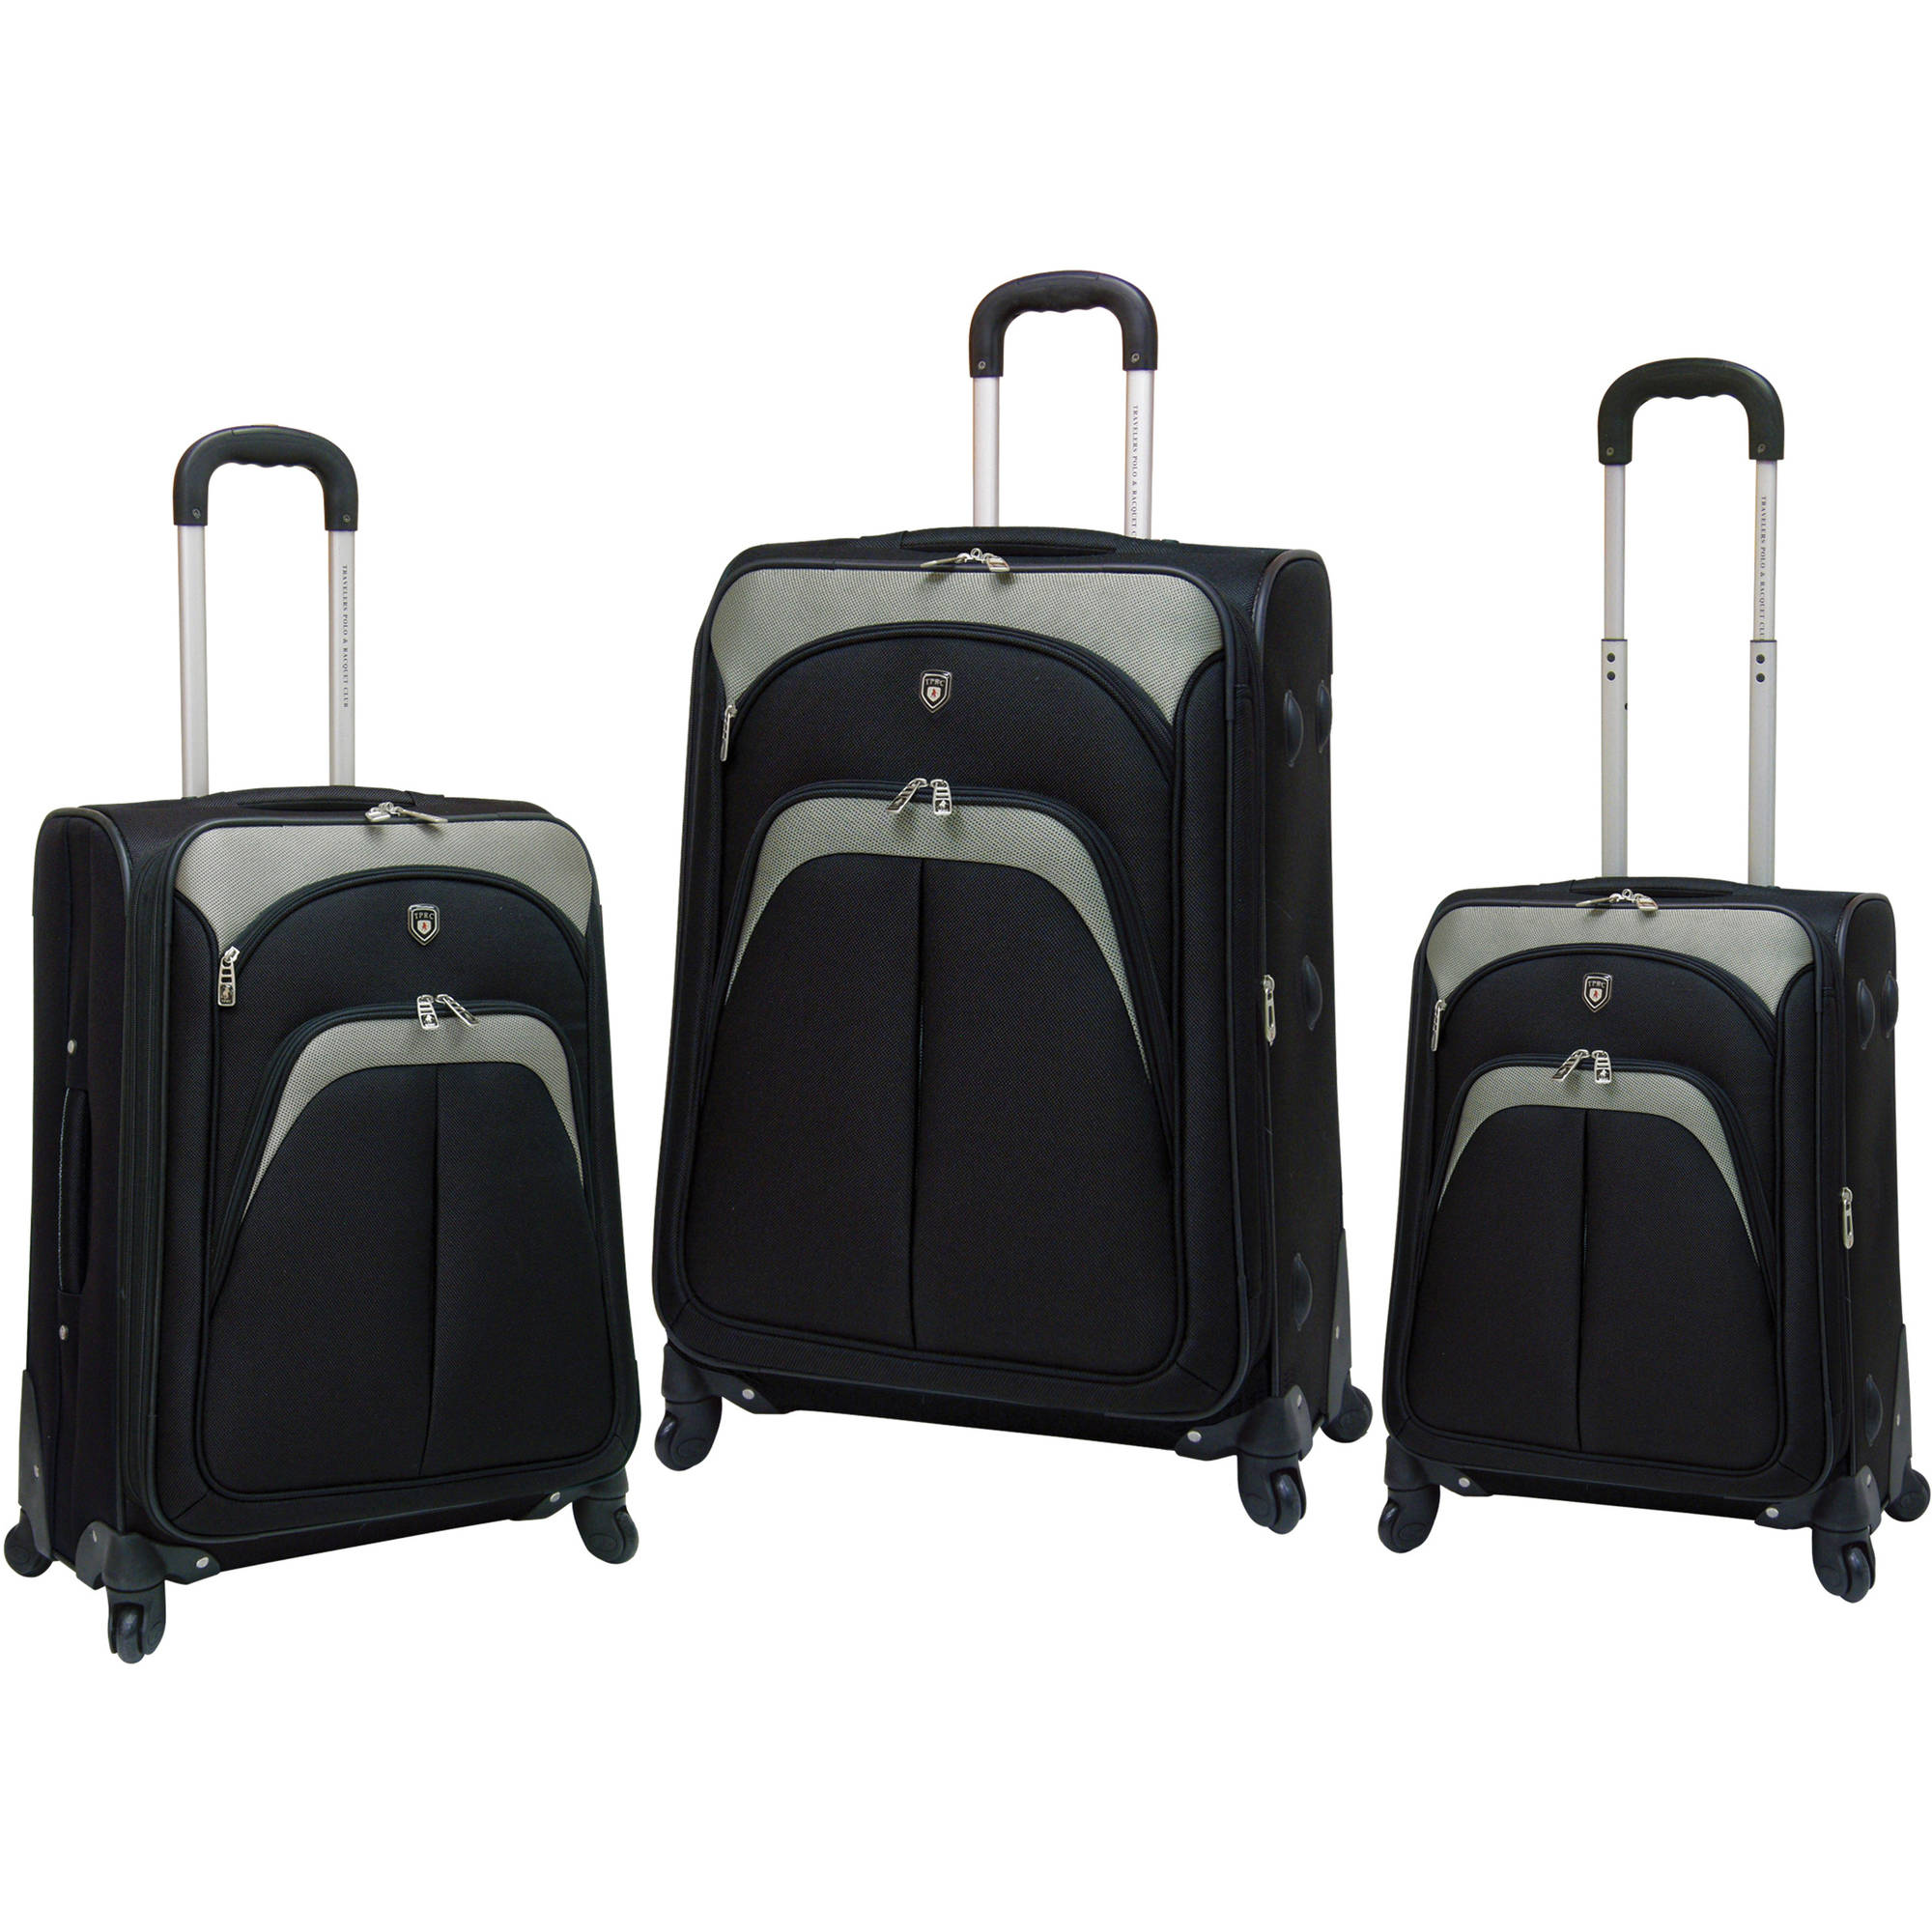 Travelers Club 3-Piece Expandable 4 Wheel Spinner Luggage Set